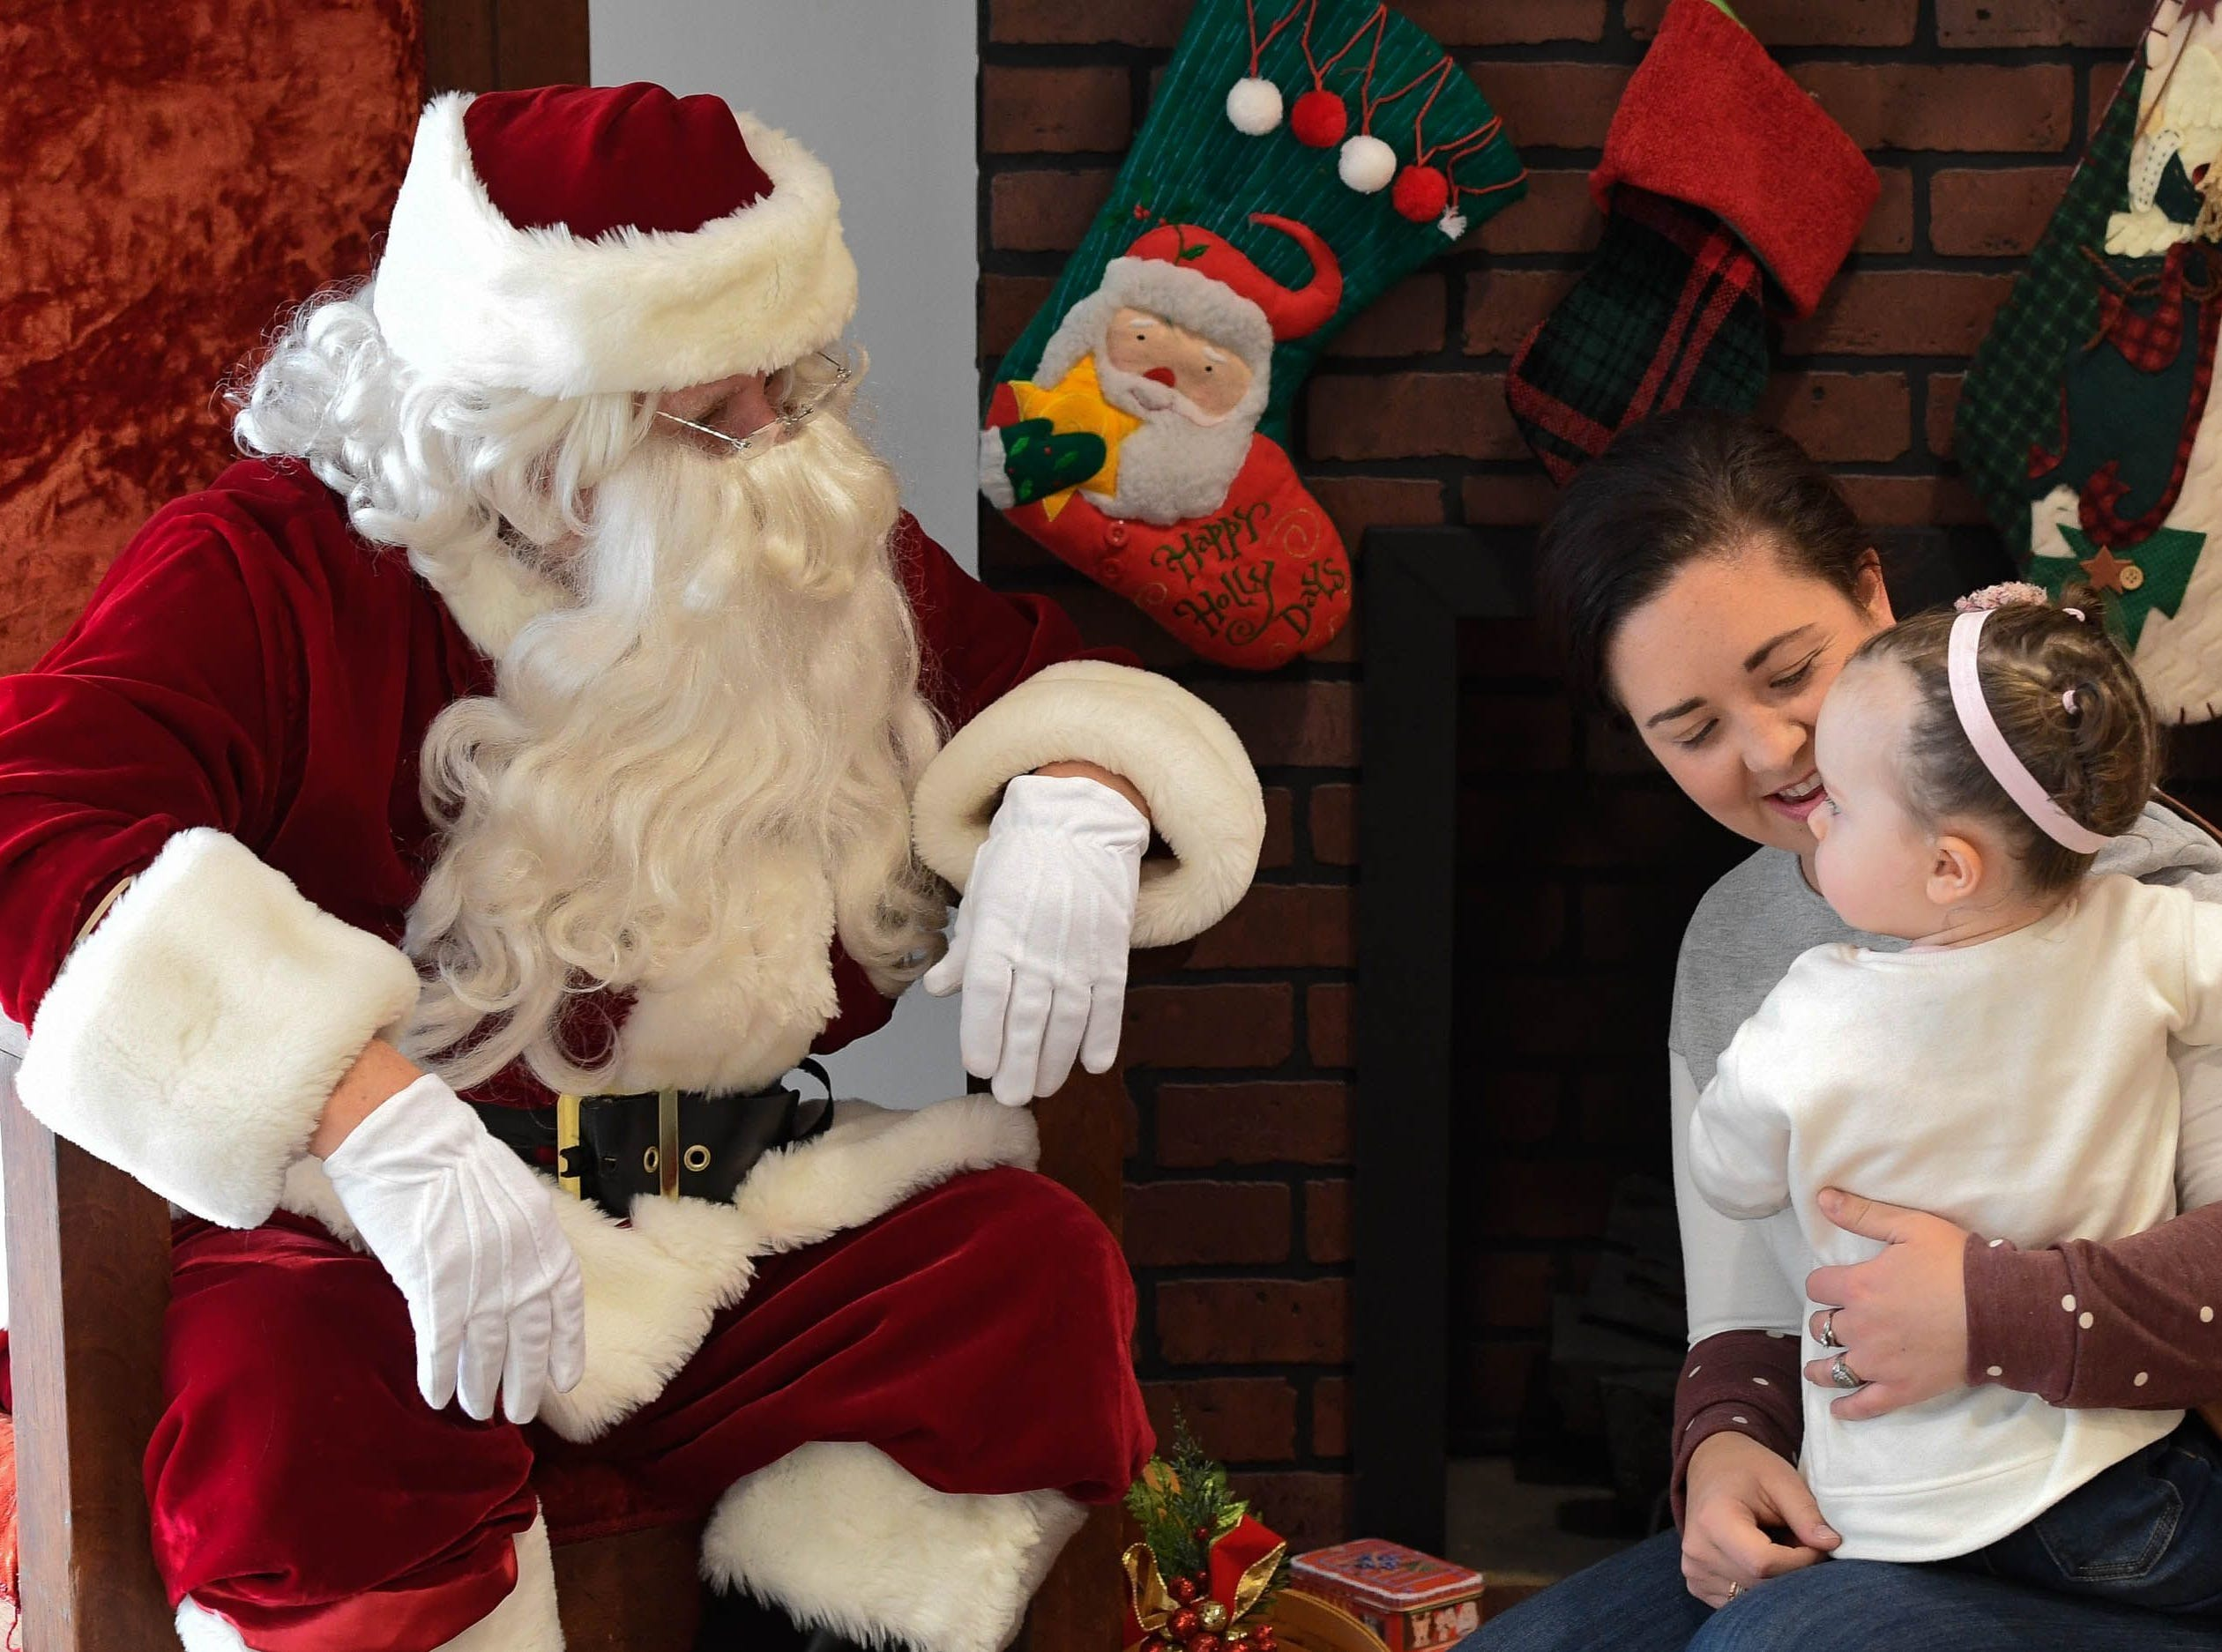 Sarah Brooks with her daughter Stella, 22 months-old, visit with Santa.